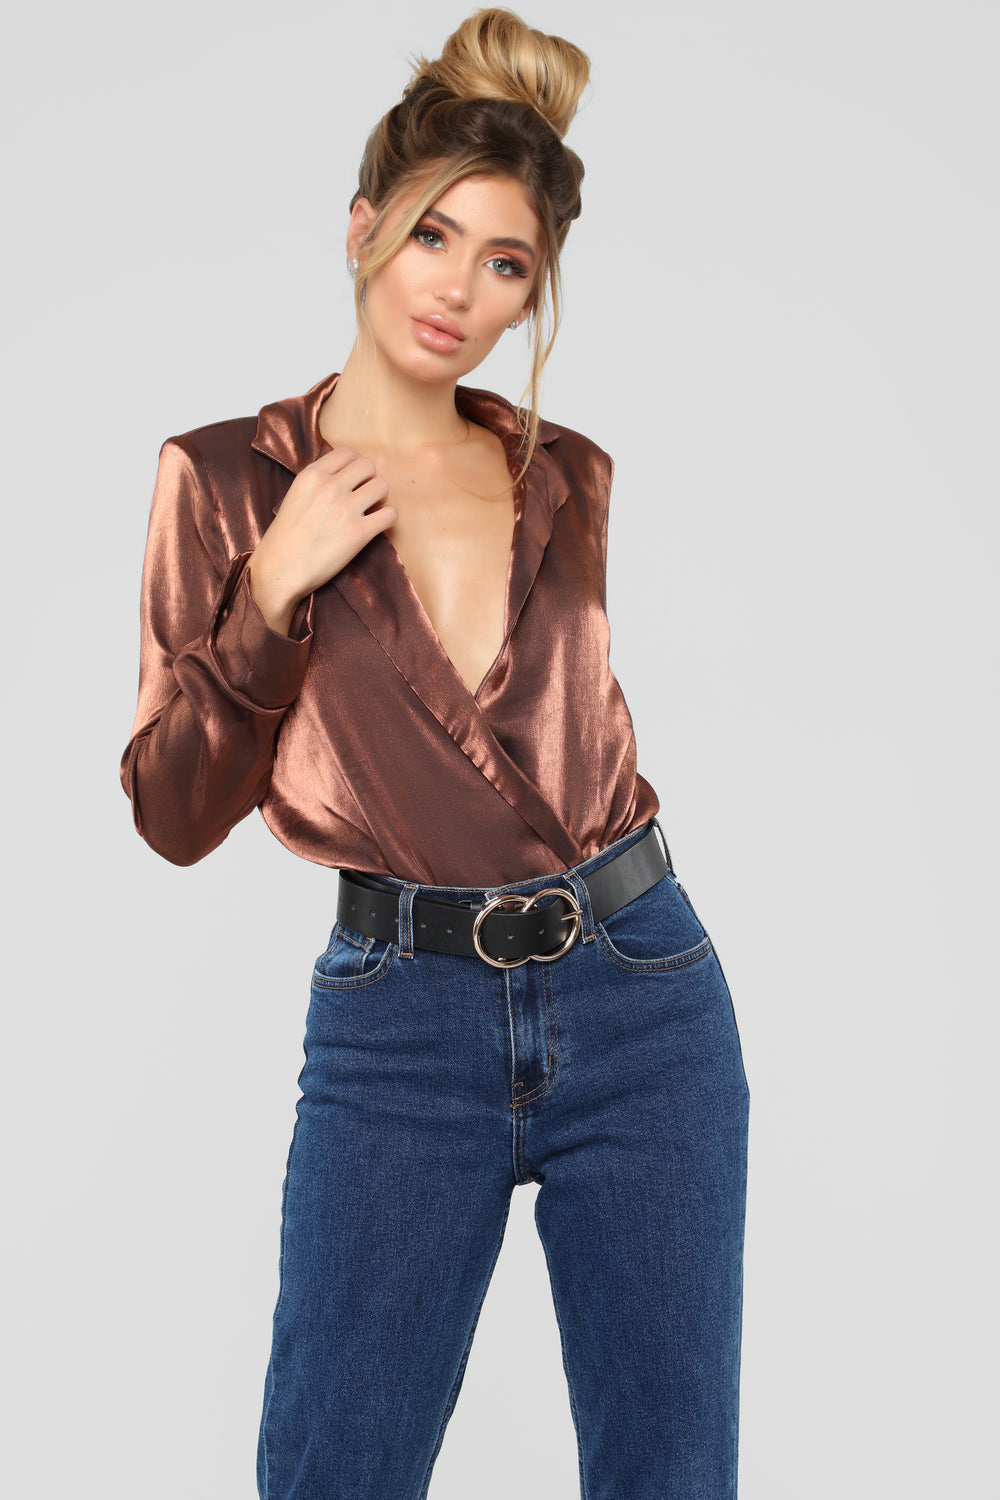 In My Dreams Tonight Bodysuit - Copper